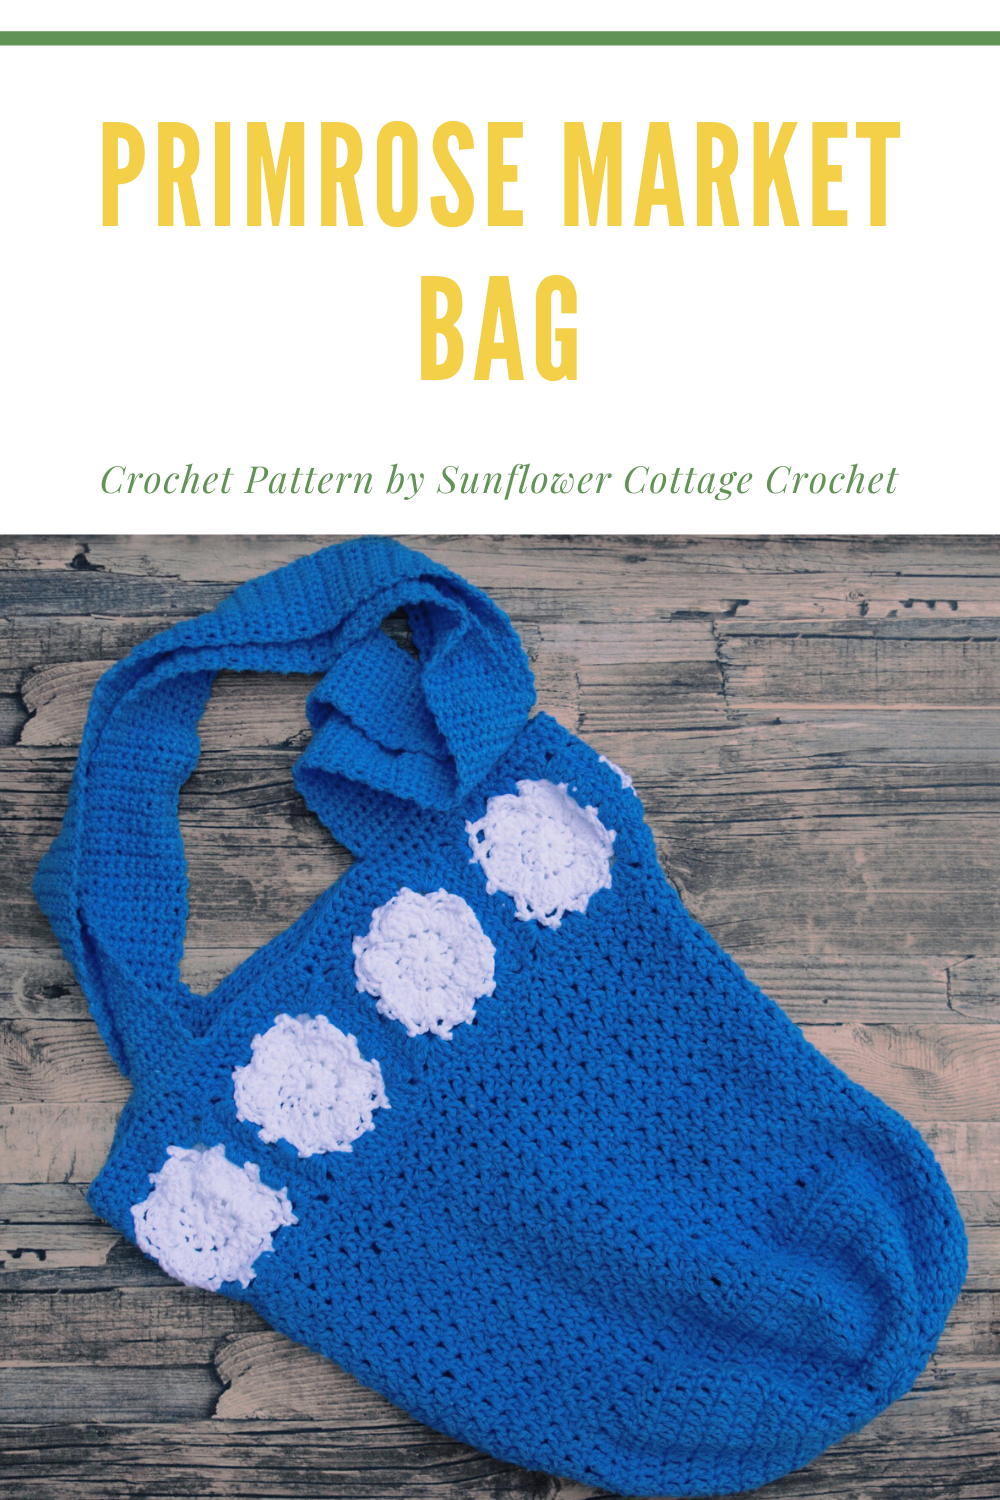 Primrose Market Bag Crochet Pattern